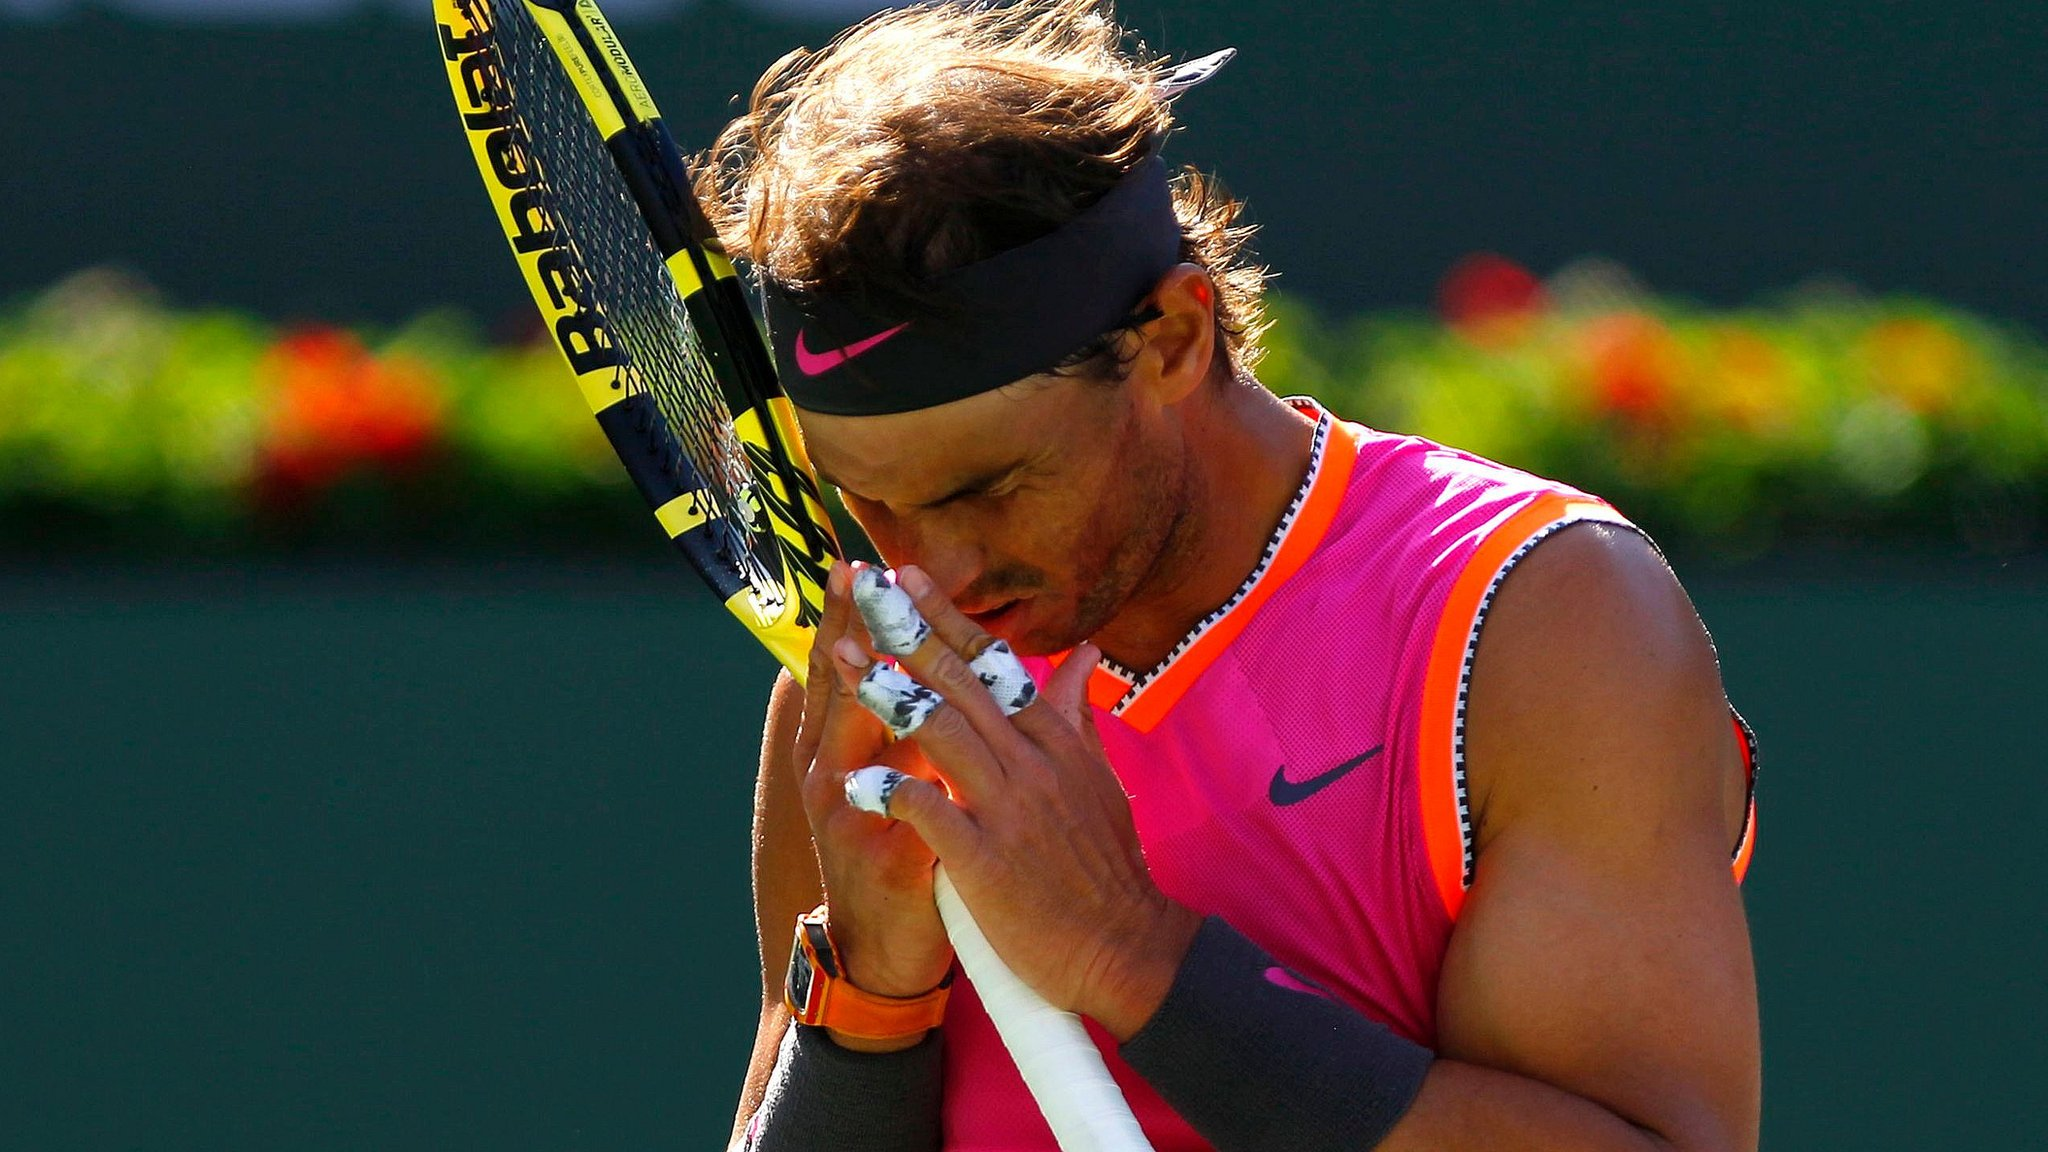 'Was this our last chance to meet? I hope not' - Federer on Nadal's Indian Wells withdrawal